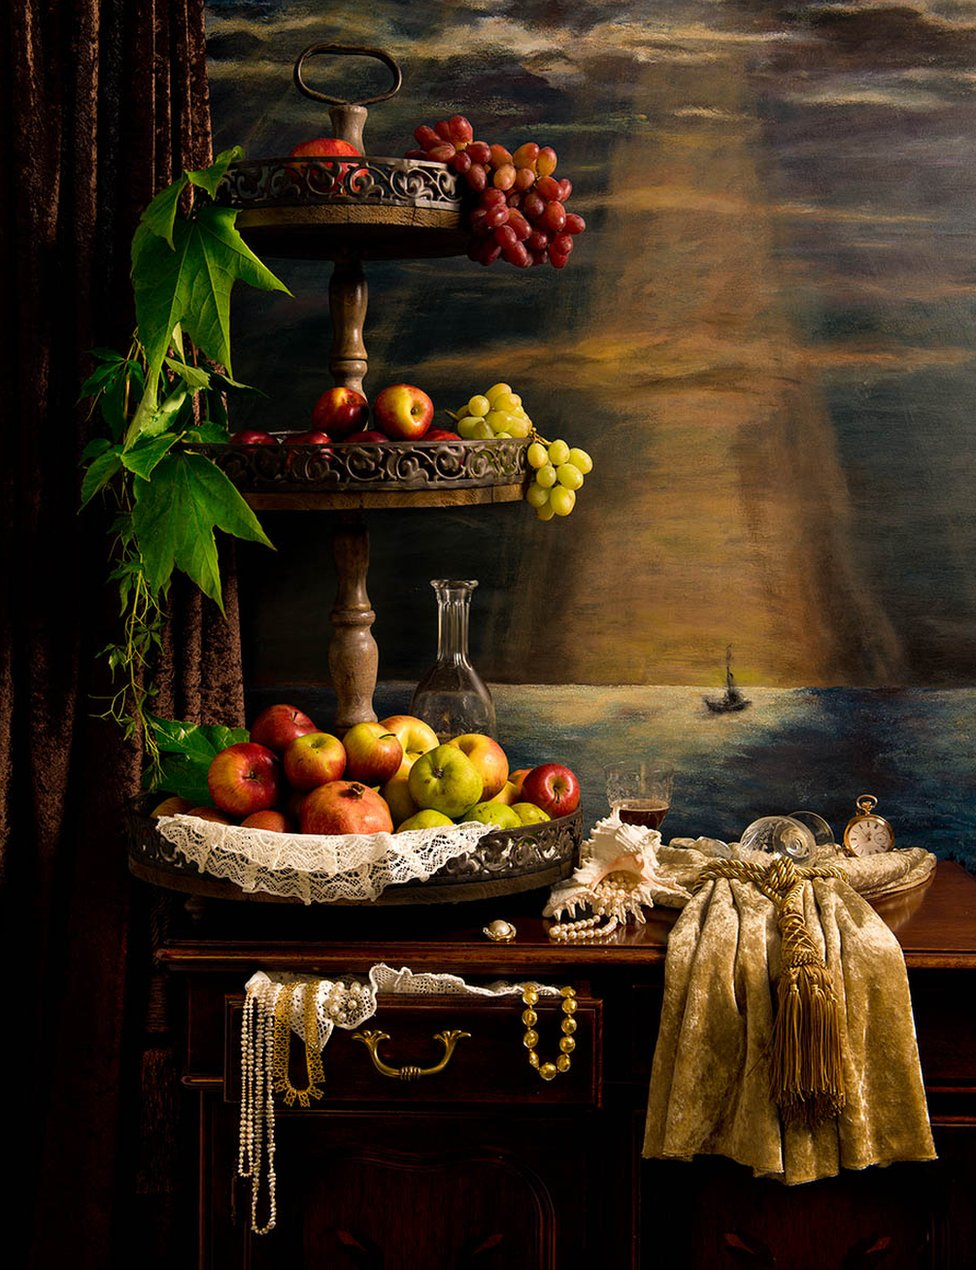 A wooden stand covered in fruit in front of a painting of a ship at sea